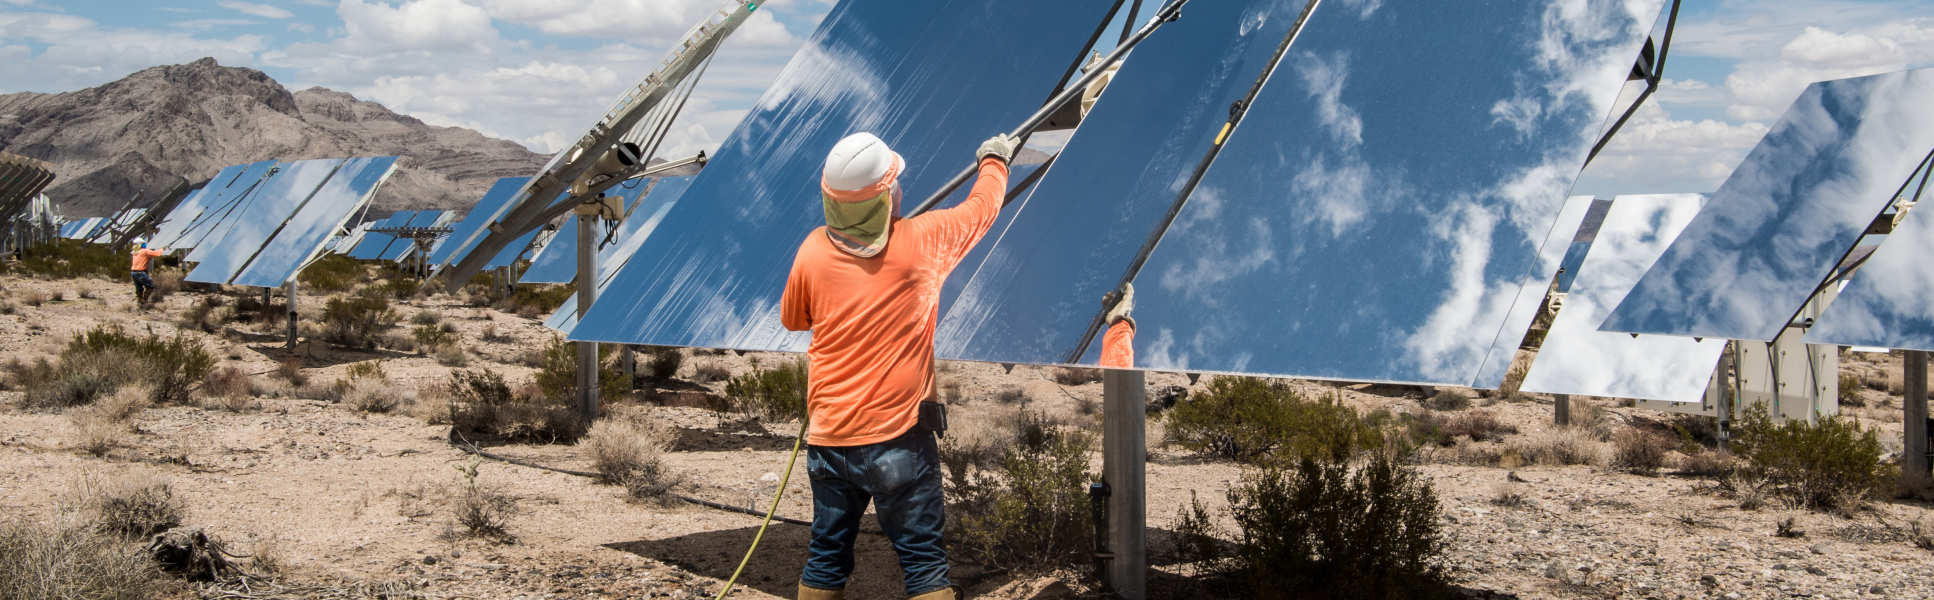 man cleaning big solar panels installed on the floor in arid conditions